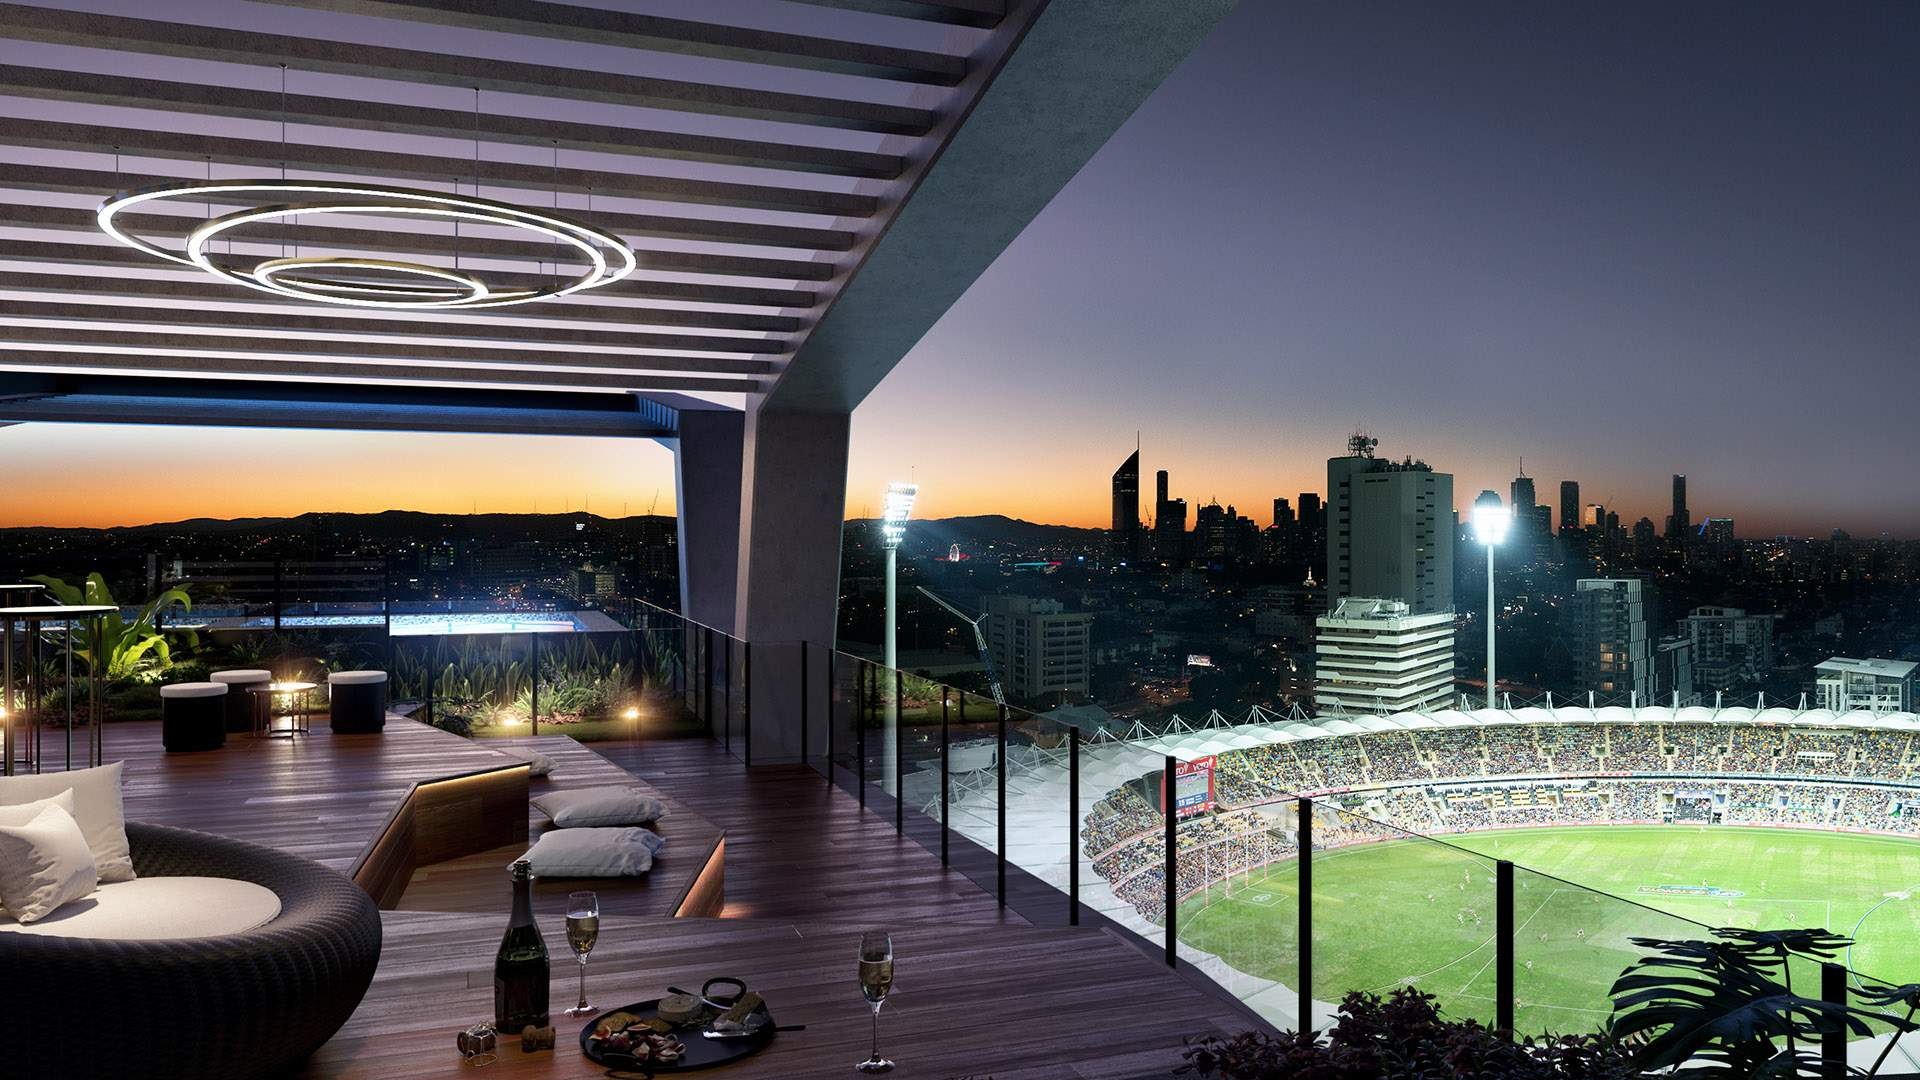 Australia's First Ever Rooftop Skystand Is Coming to Brisbane